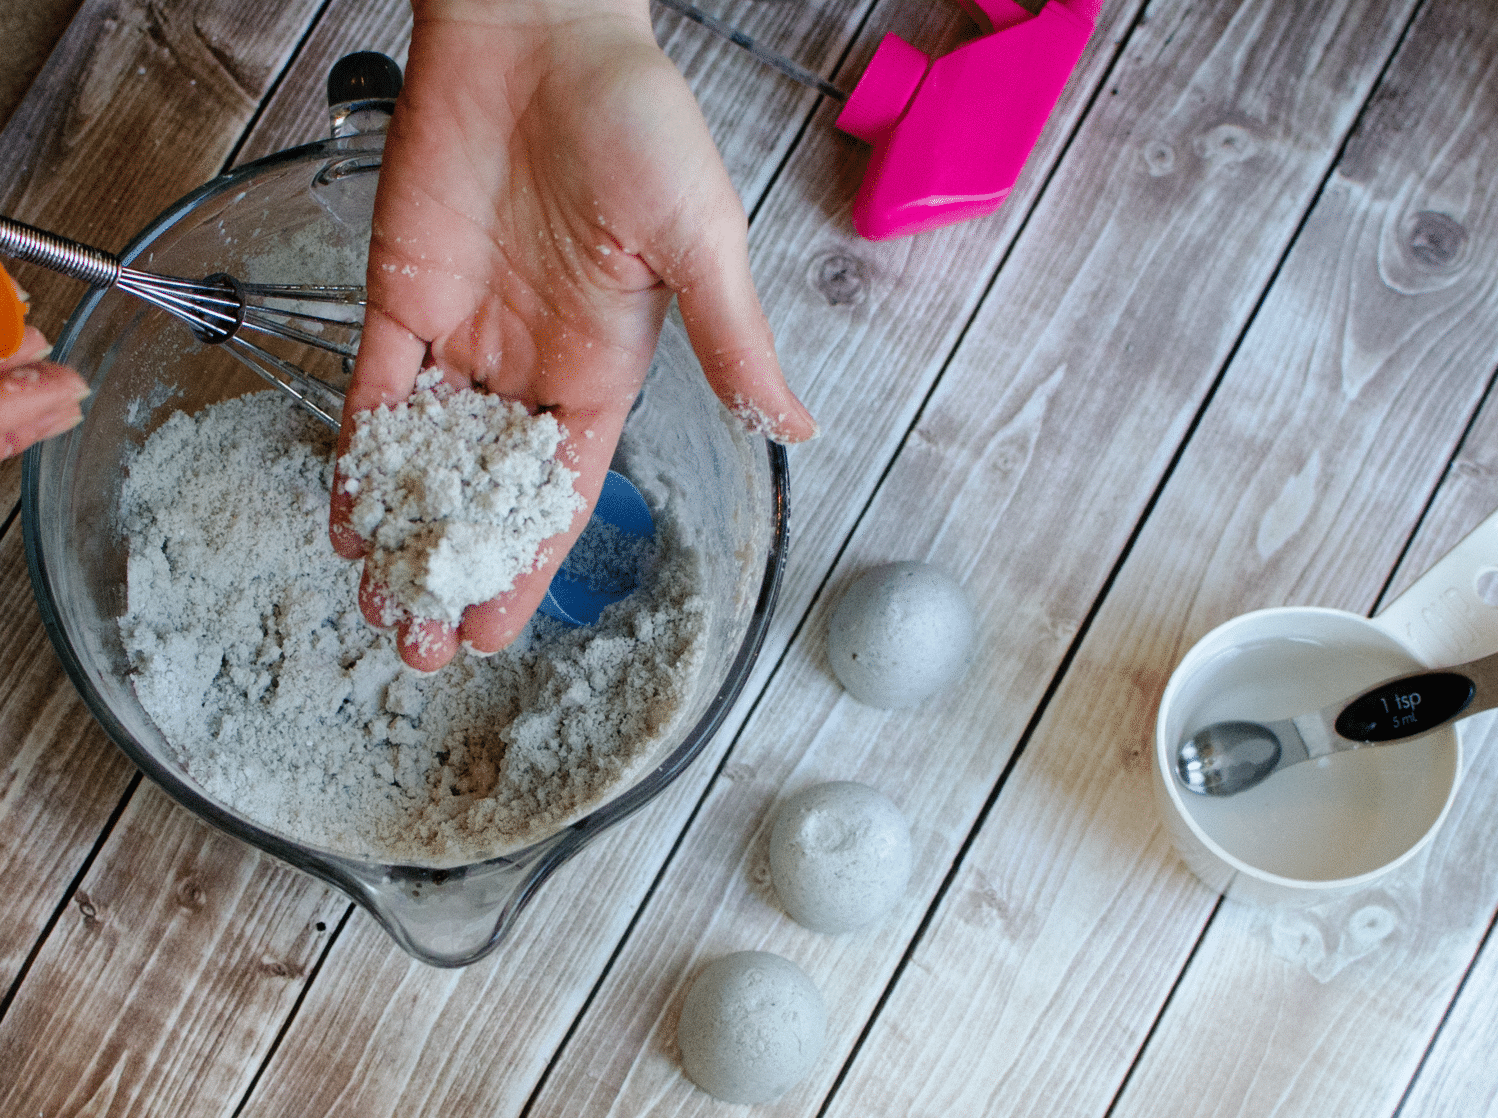 How to make Homemade Fragrant Fizzy Bath Bombs for Mother's Day